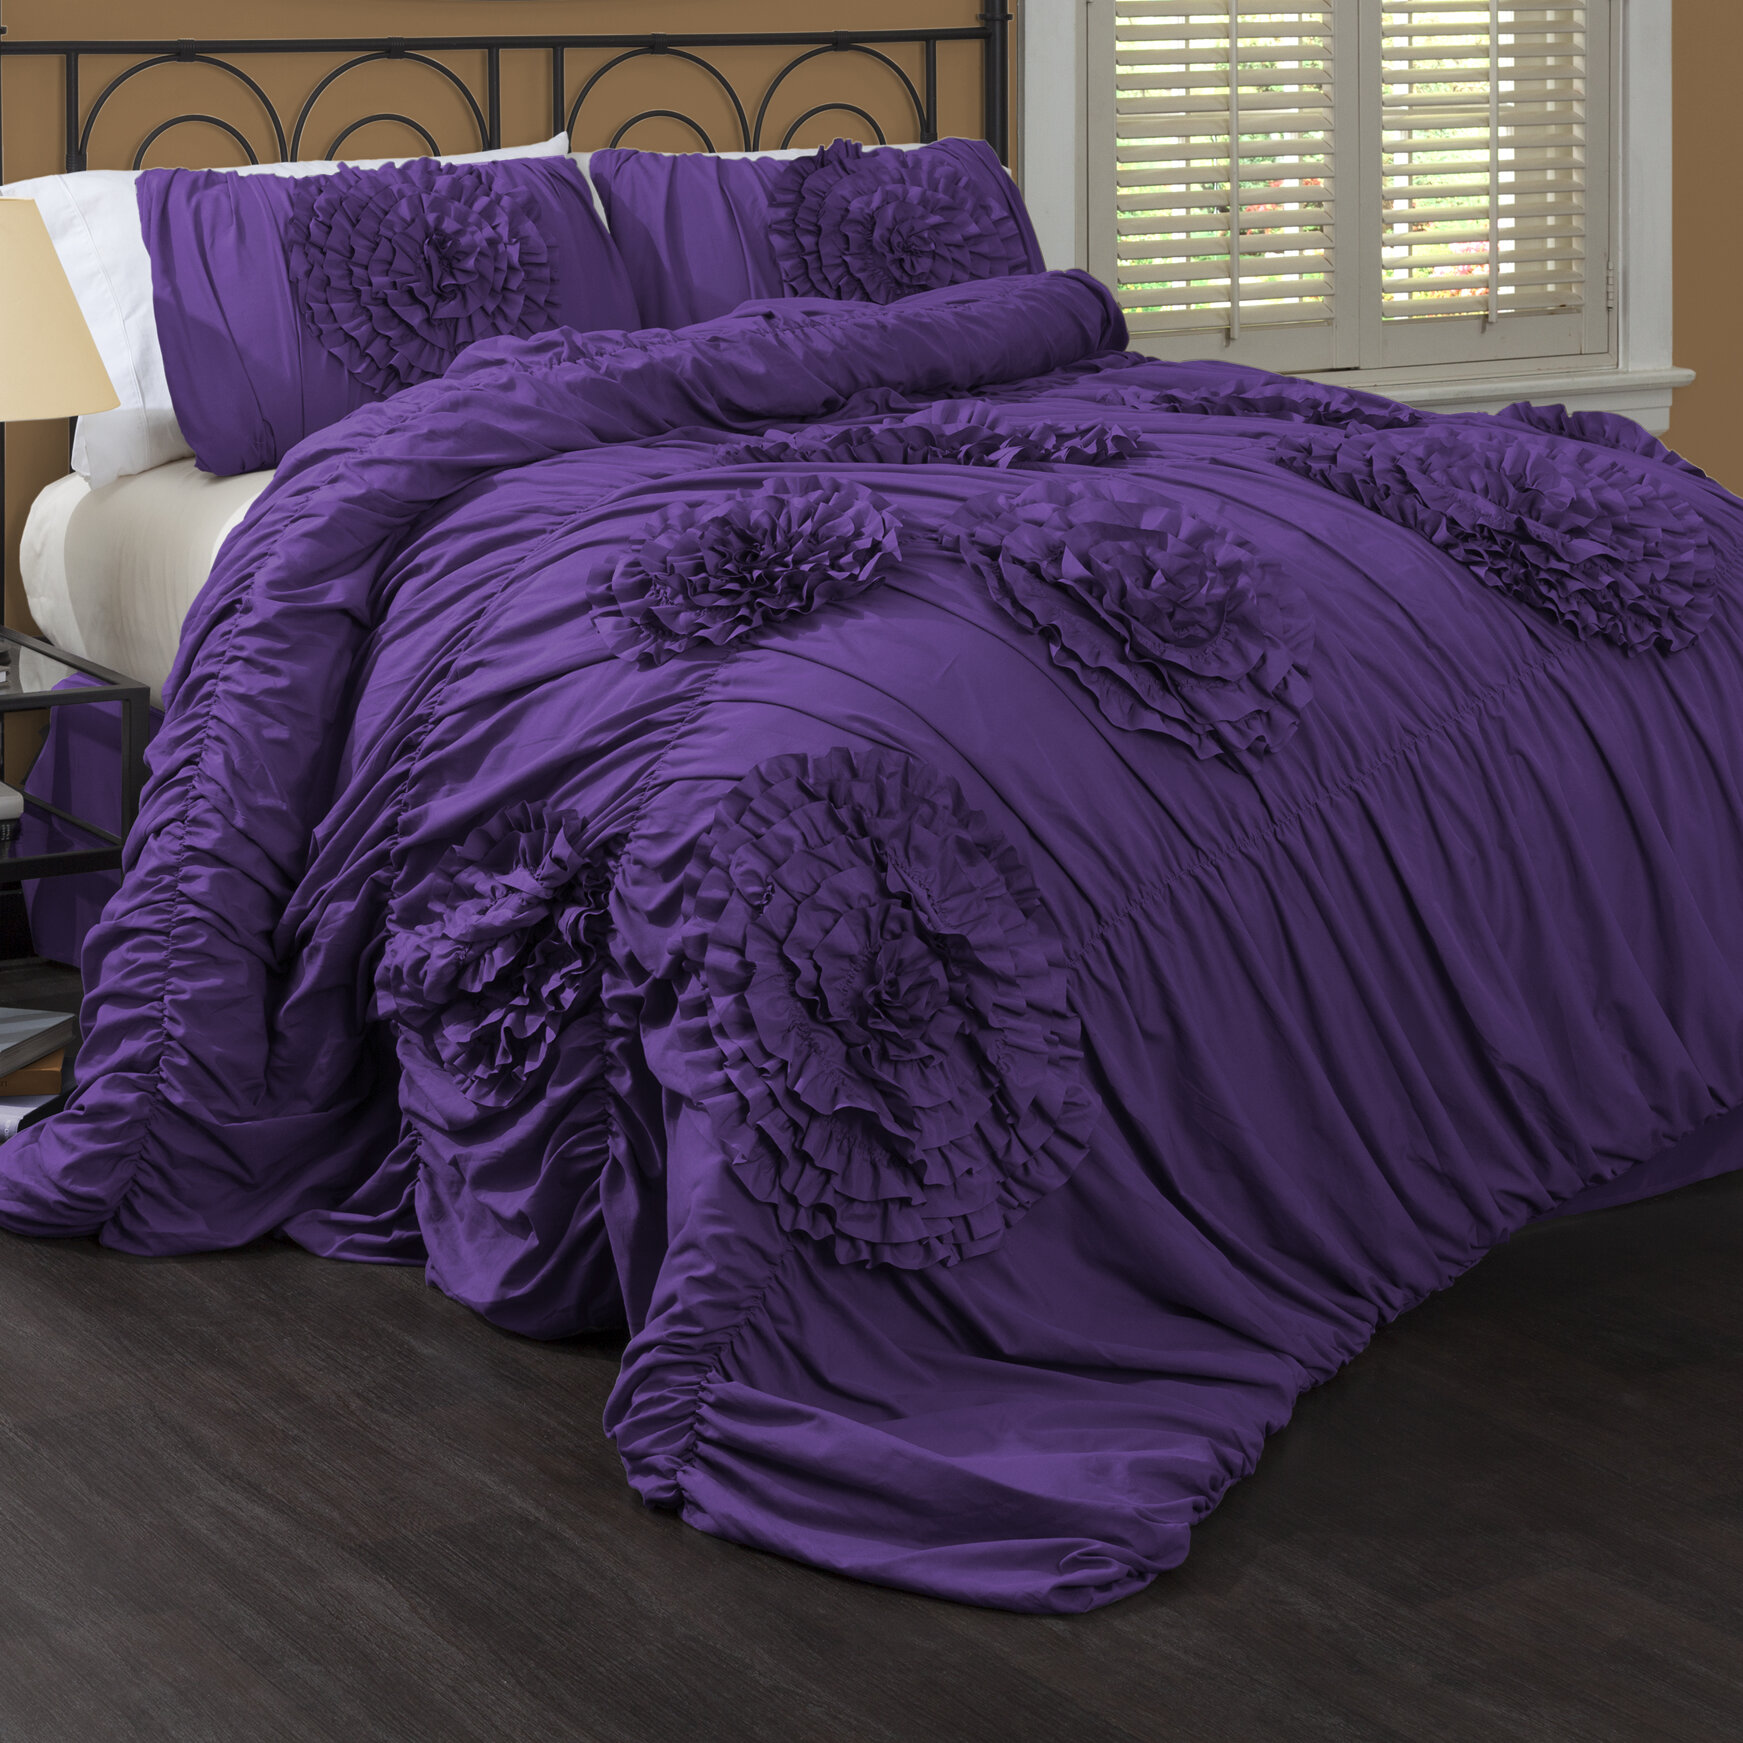 Purple Comforters Walmart Special Edition By Lush Decor Serena Piece Comforter